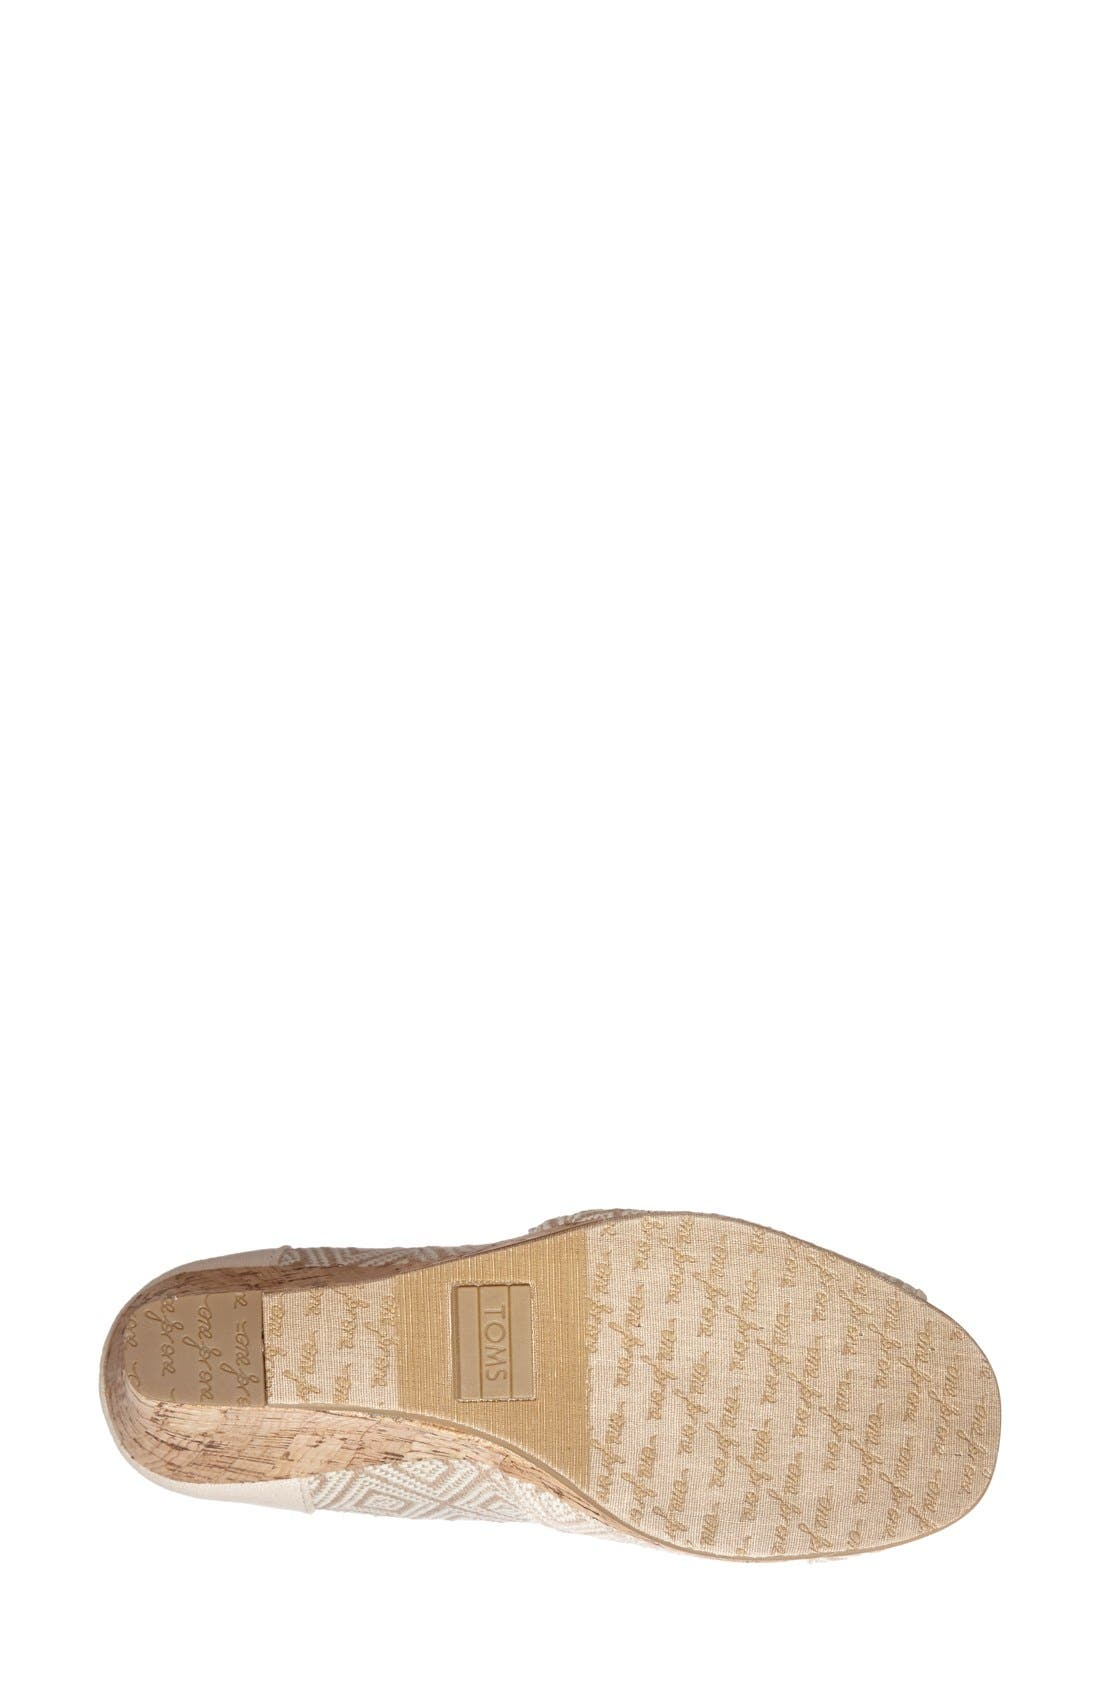 Alternate Image 4  - TOMS 'Classic' Woven Wedge Sandal (Women)